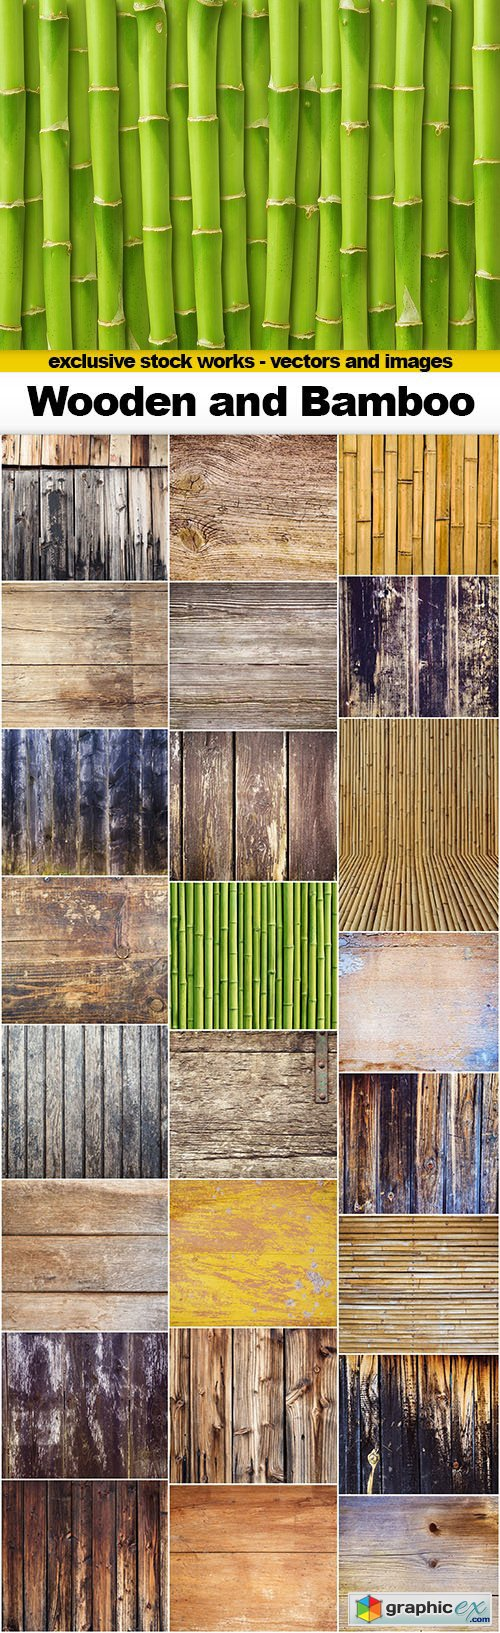 Wooden Boards and Bamboo With Texture - 25x JPEGs